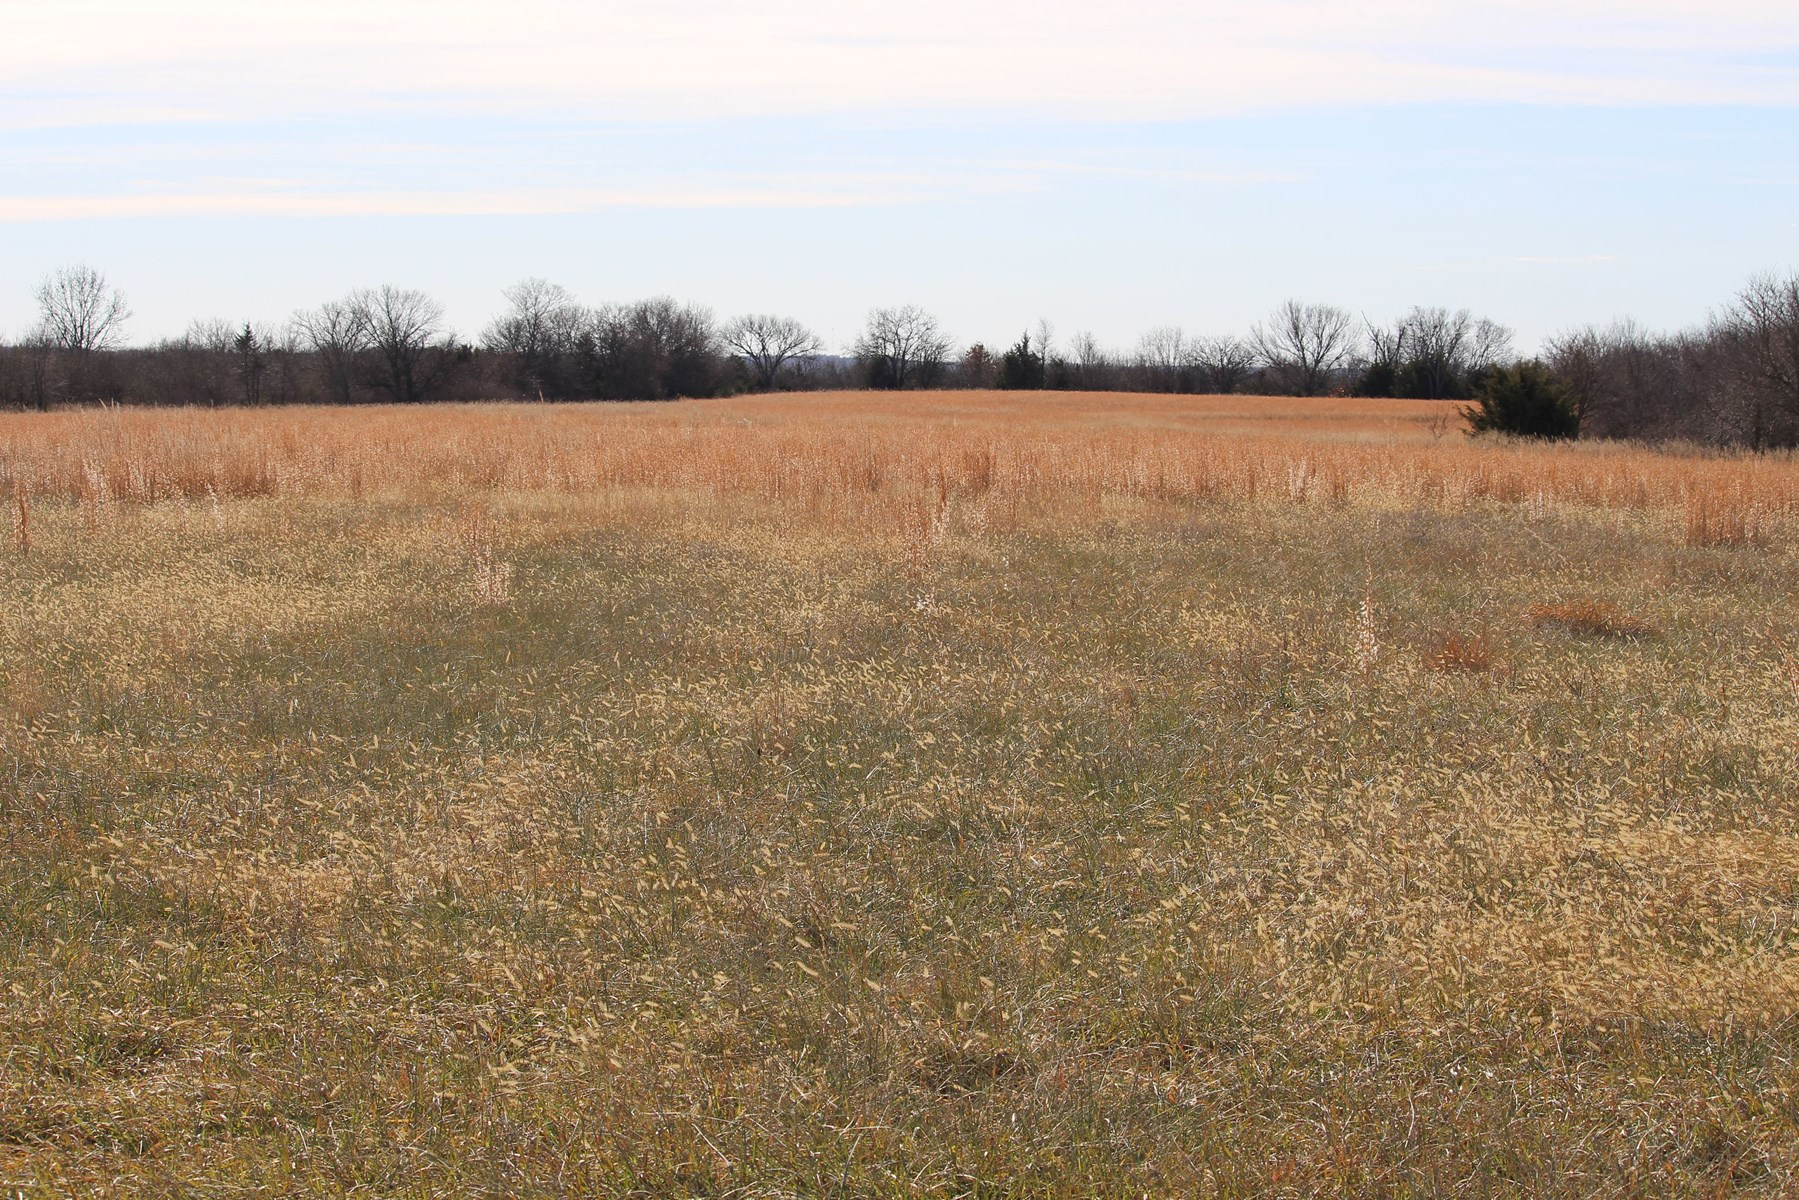 70 ACRES OF VACANT RECREATIONAL LAND IN FRANKLIN COUNTY KS